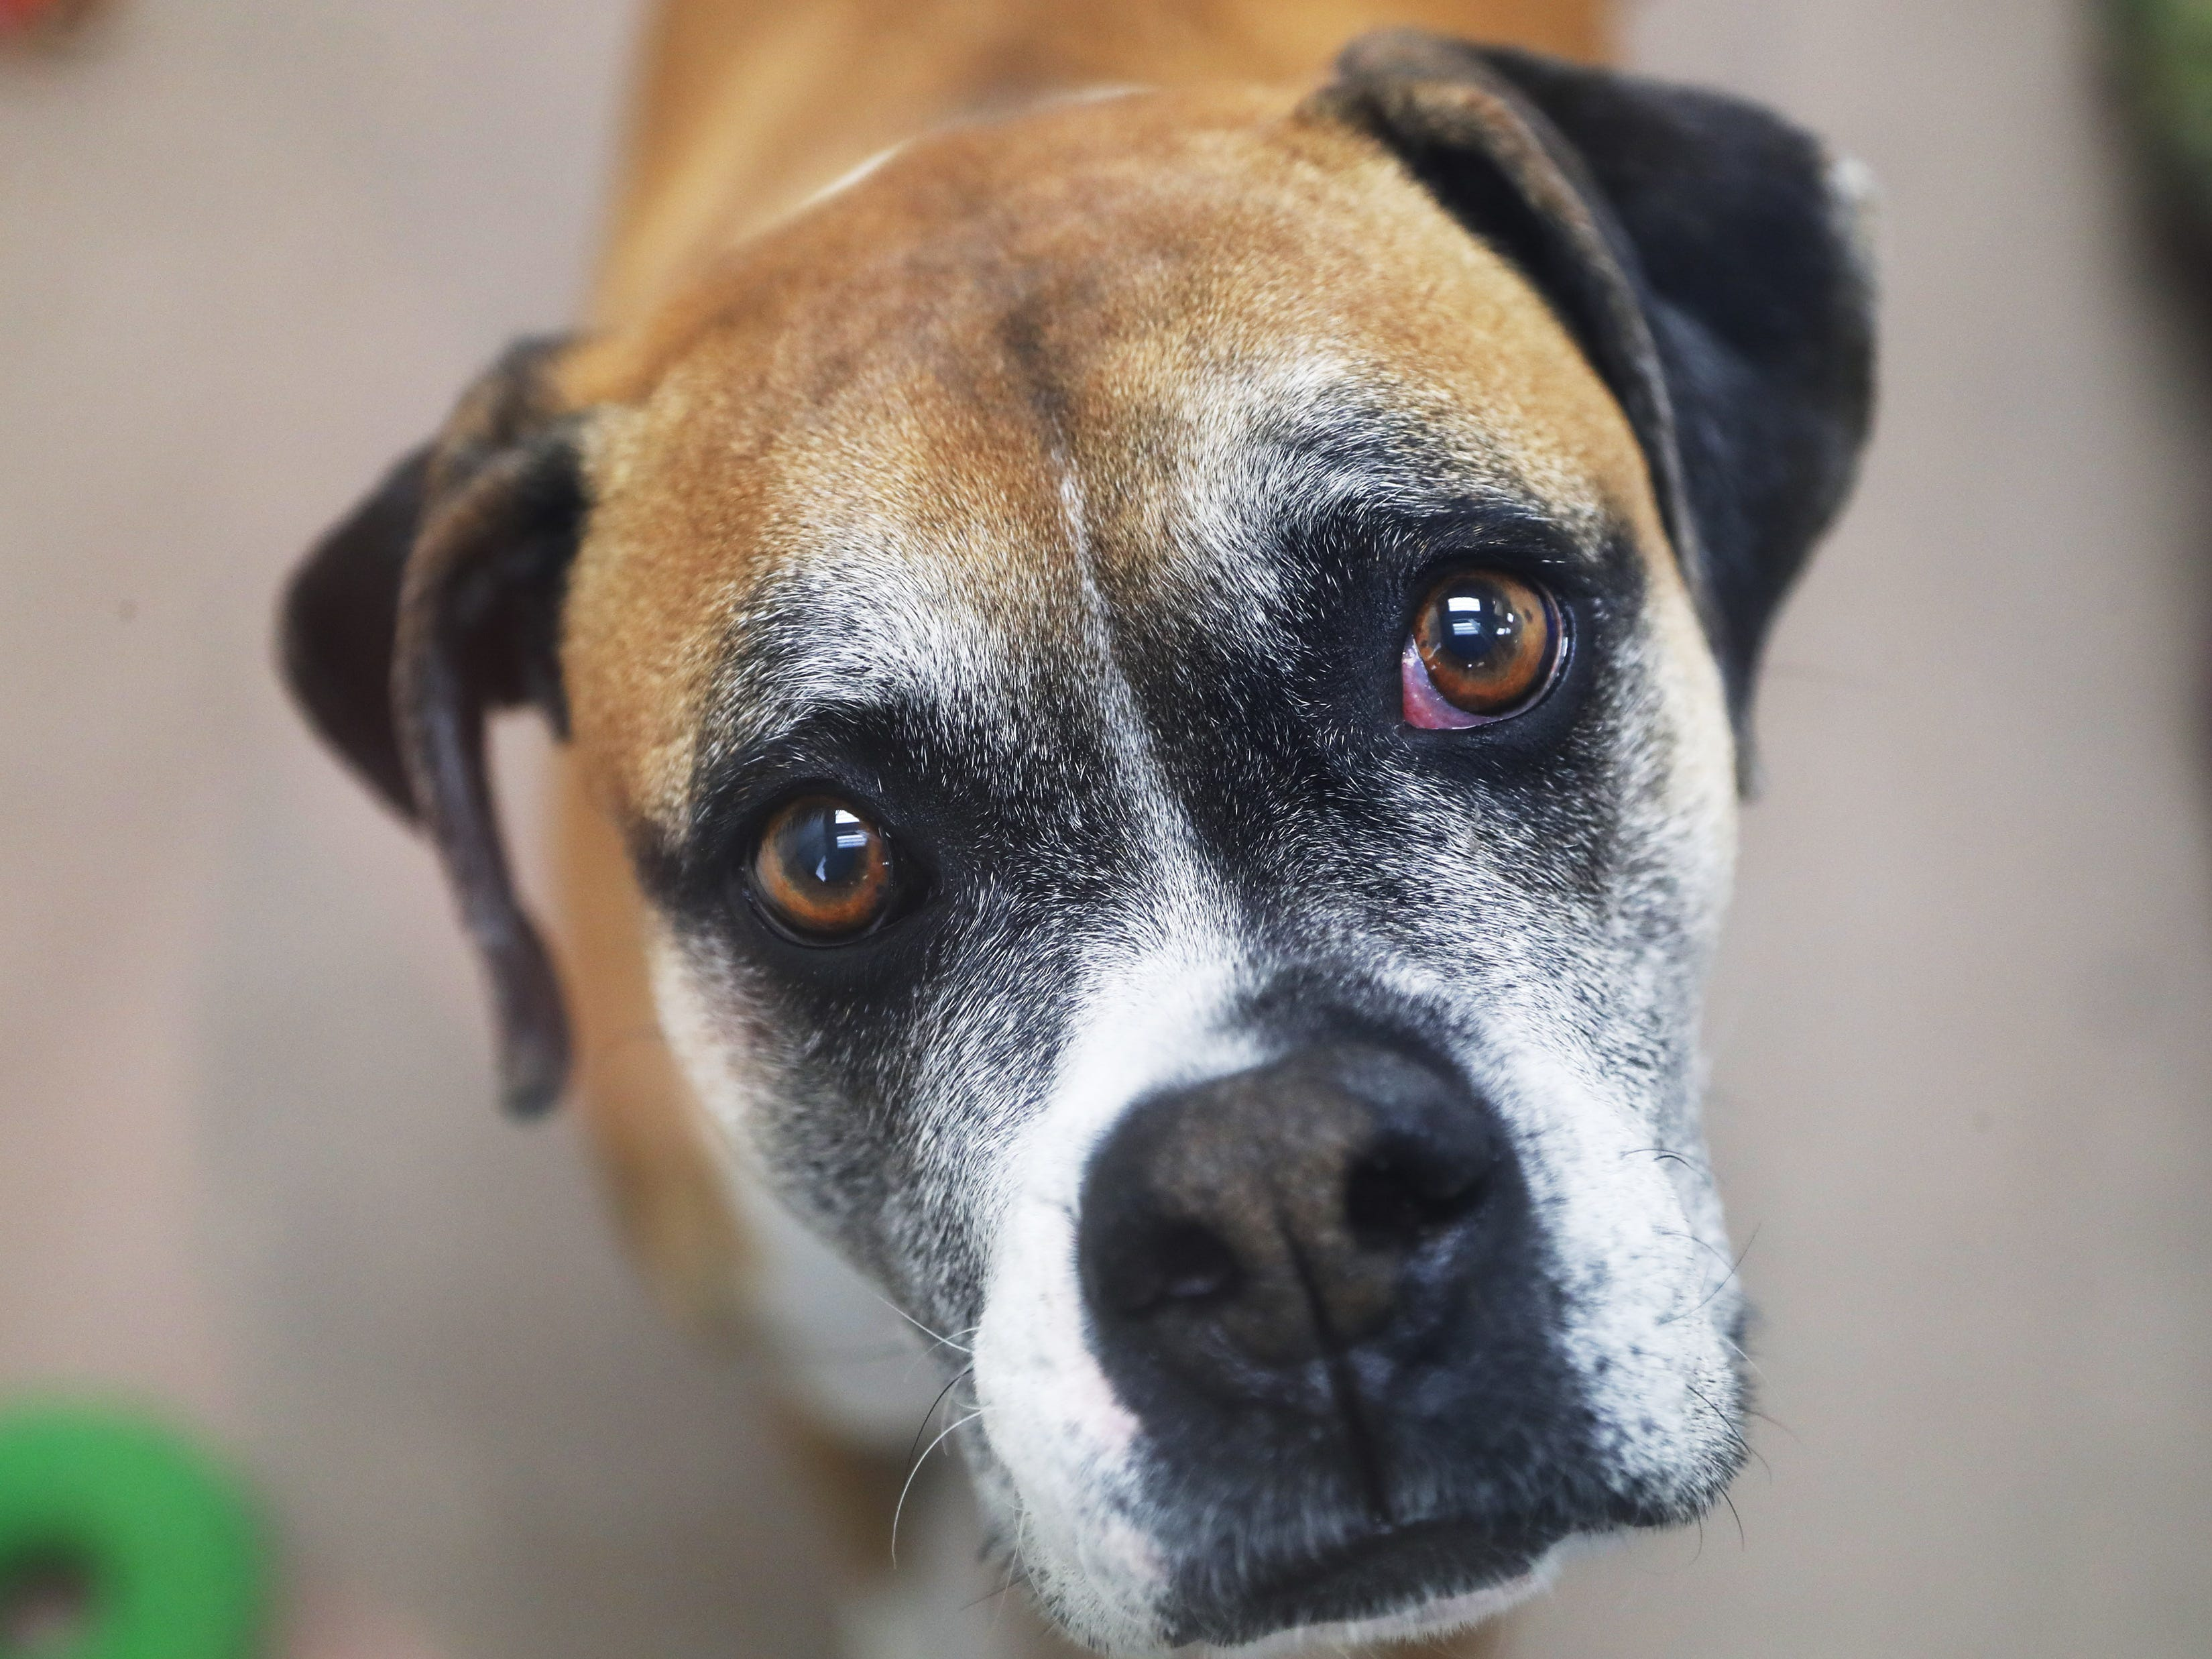 Maggie, a boxer, waits to be adopted at the Arizona Humane Society in Phoenix on April 1, 2019. More than 8,000 dogs and cats have been surrendered in Maricopa County since the start of the year.